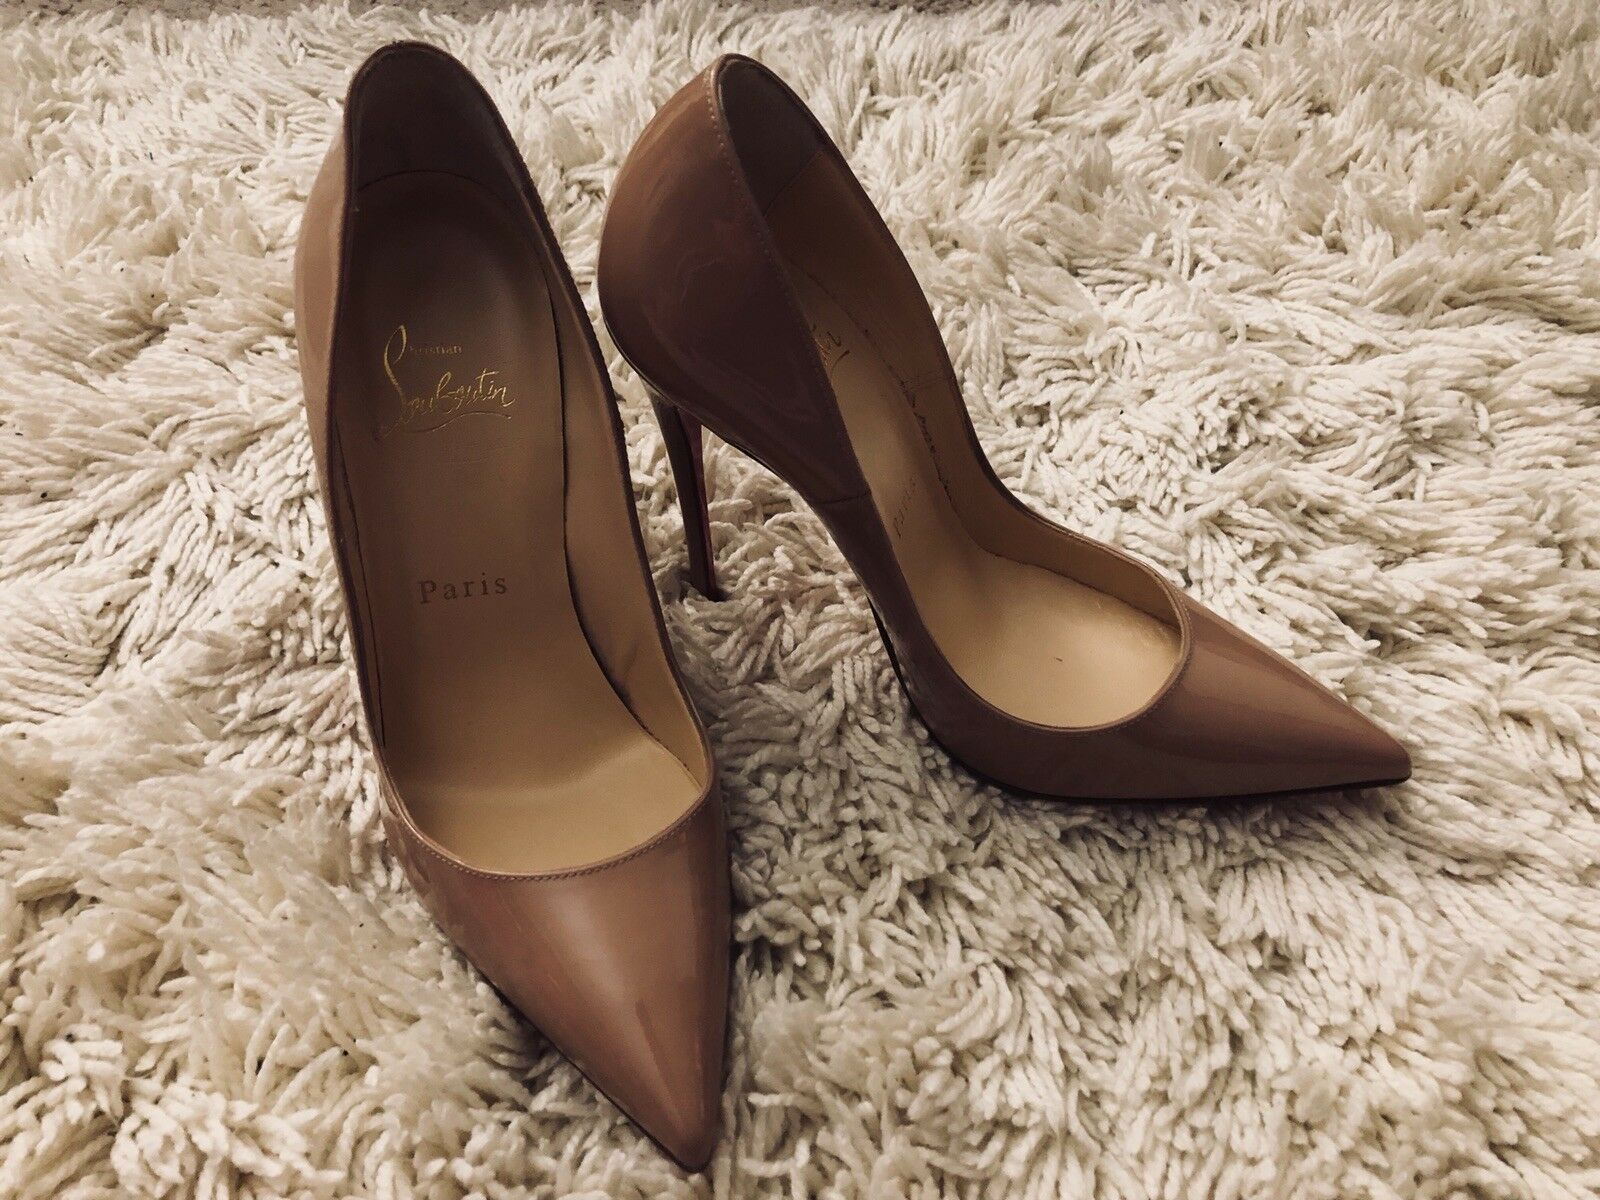 Christian Louboutin So Kate 120 Patent Leather Stiletto Pumps Heels Nude Size 36